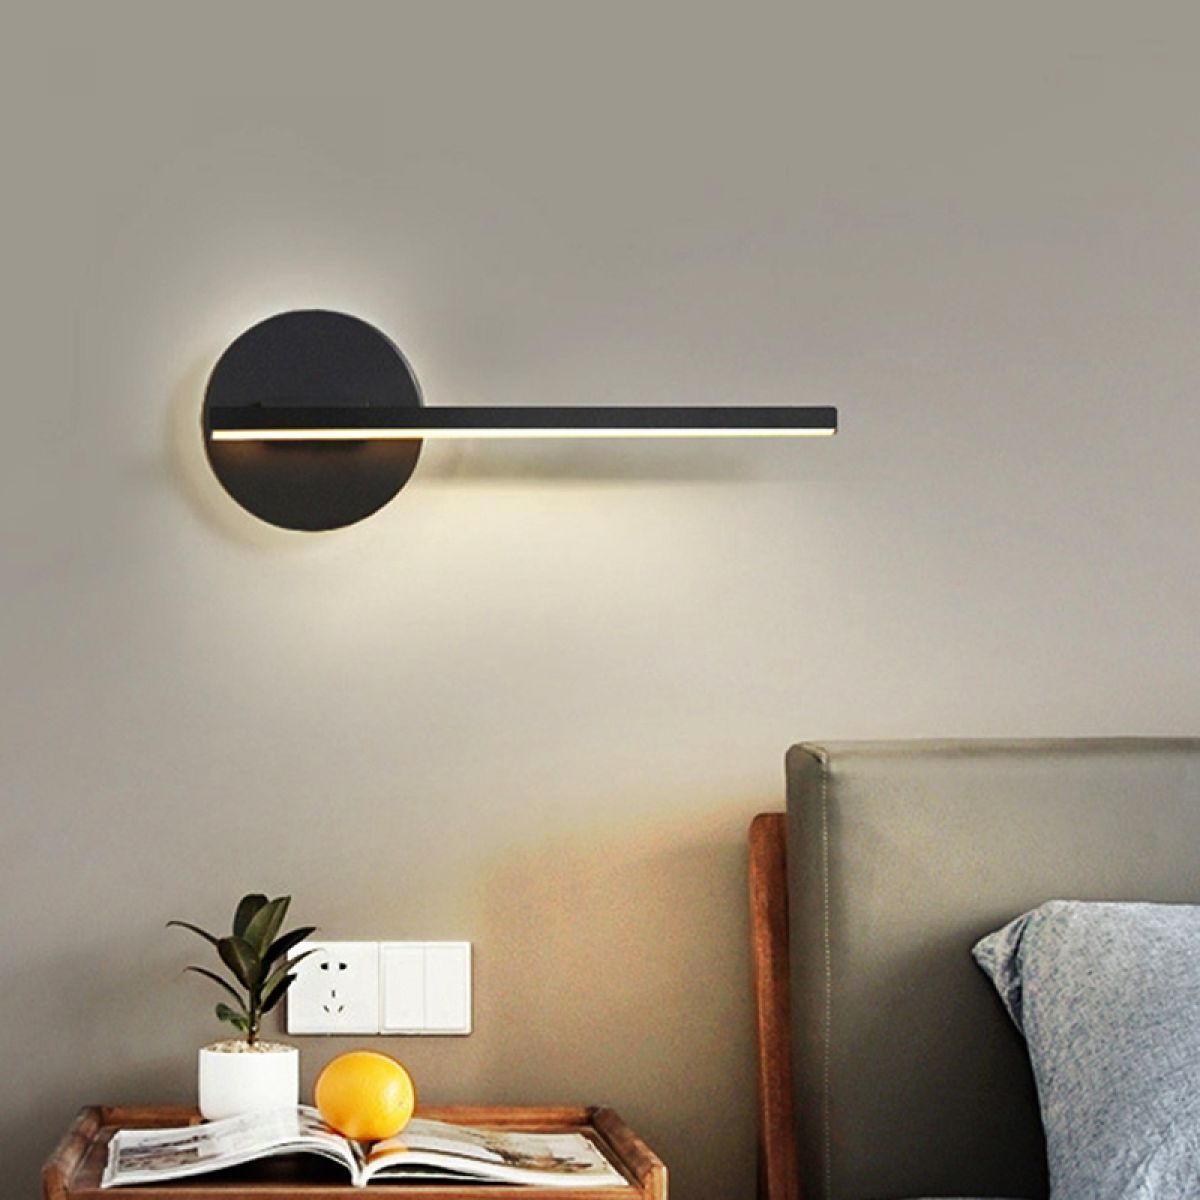 Table or Wall lamp